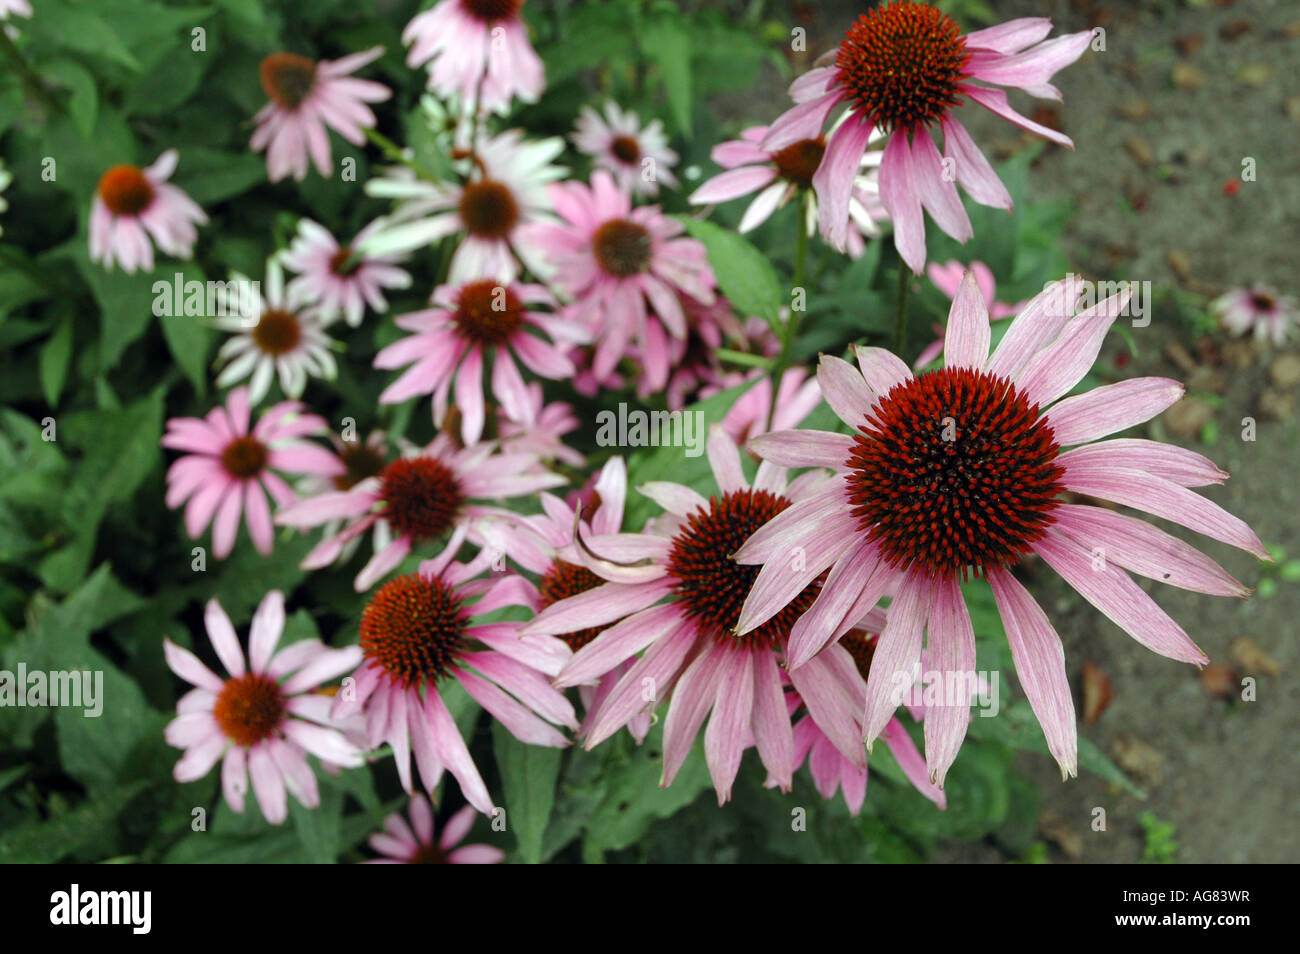 Eastern Purple Coneflower Echinacea purpurea - Stock Image